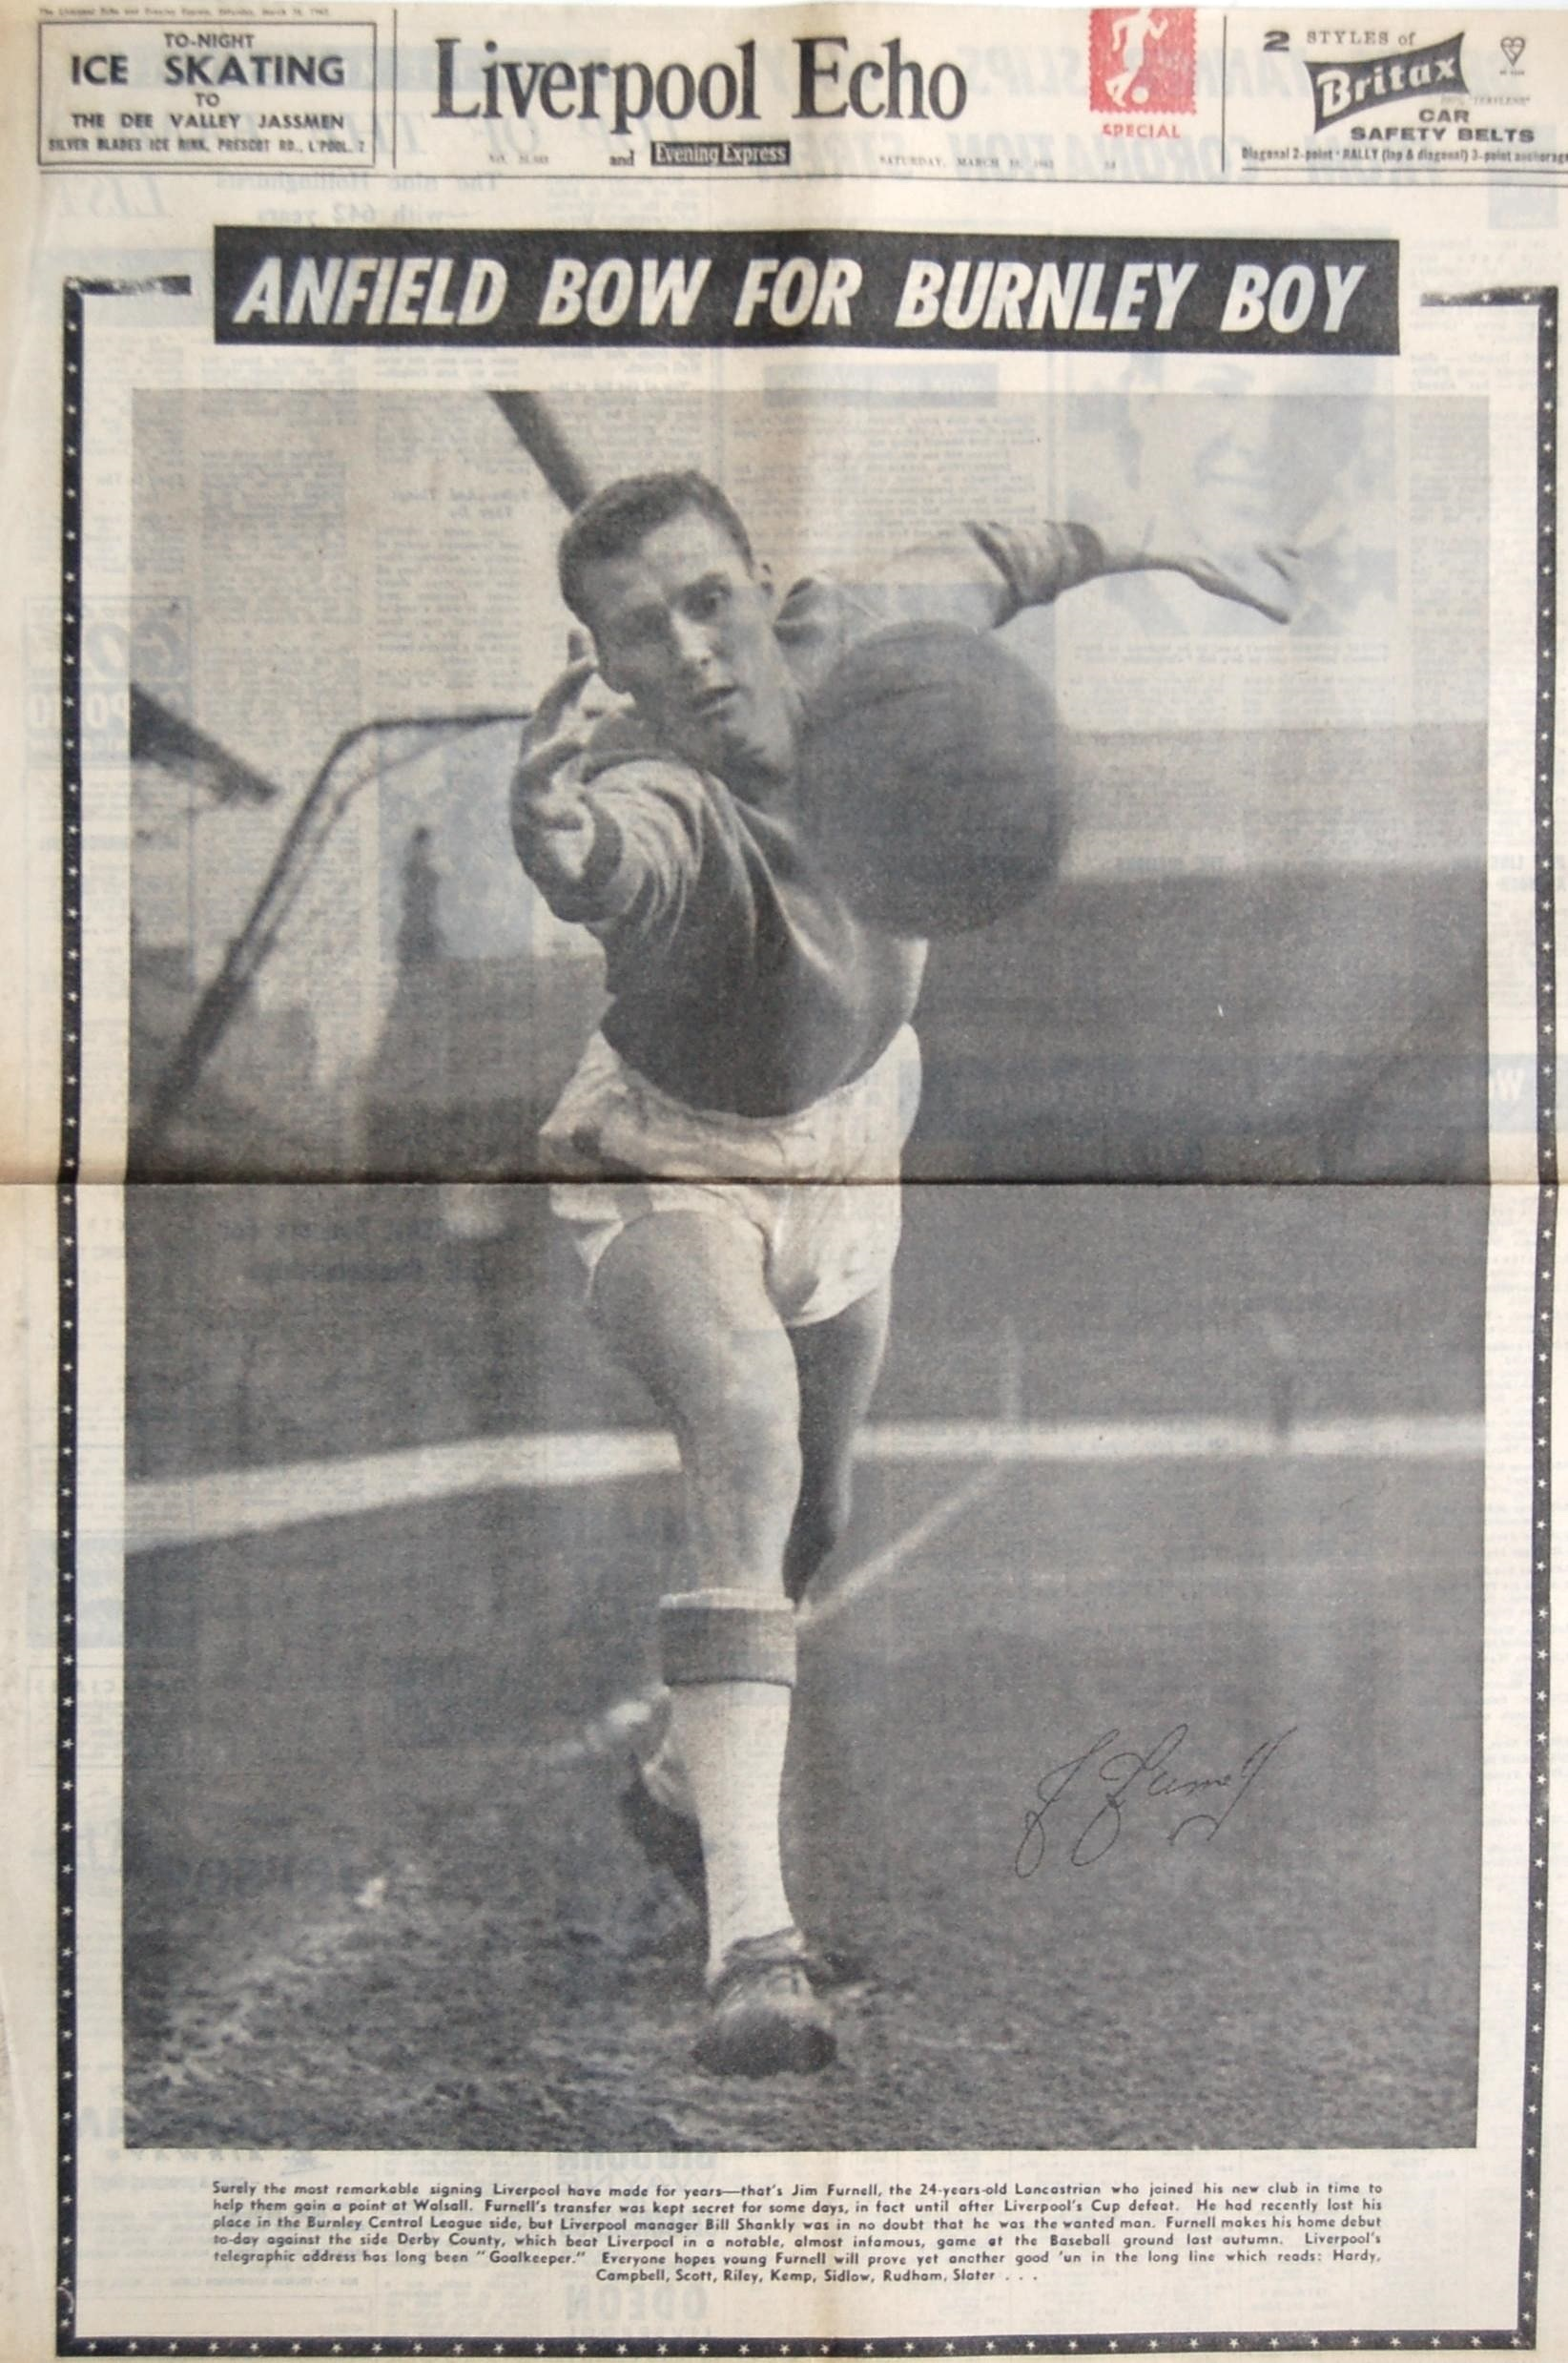 Furnell on the cover of the Liverpool Echo on 10 March 1962